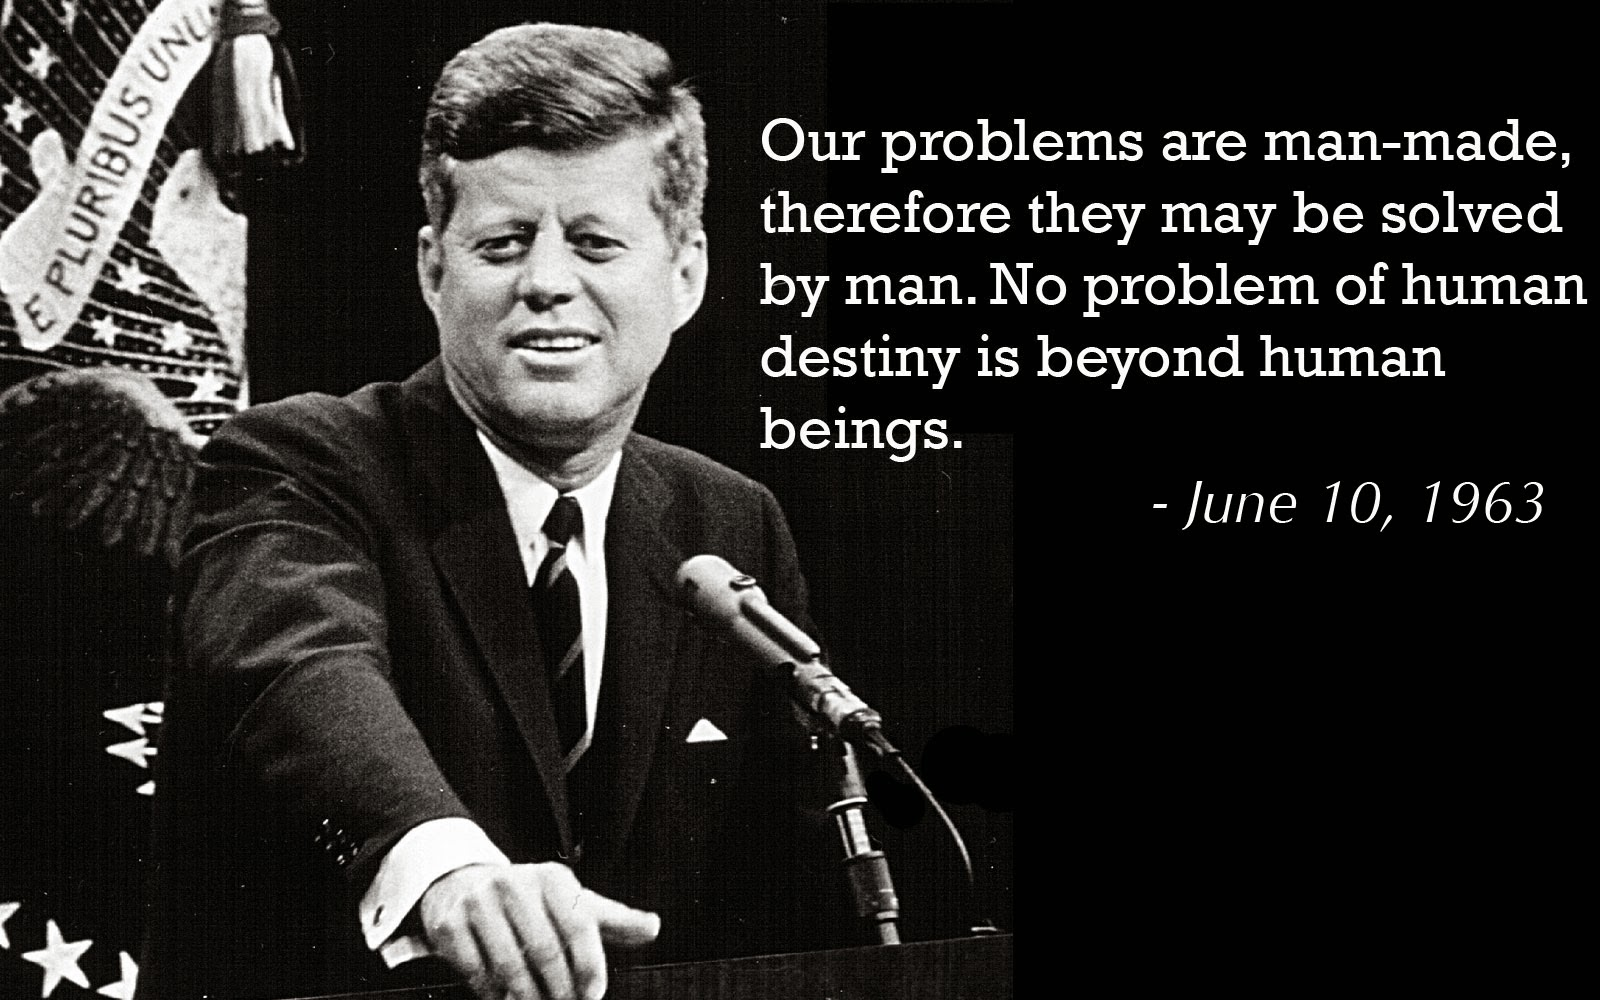 john f kennedy quote wallpapers - photo #11